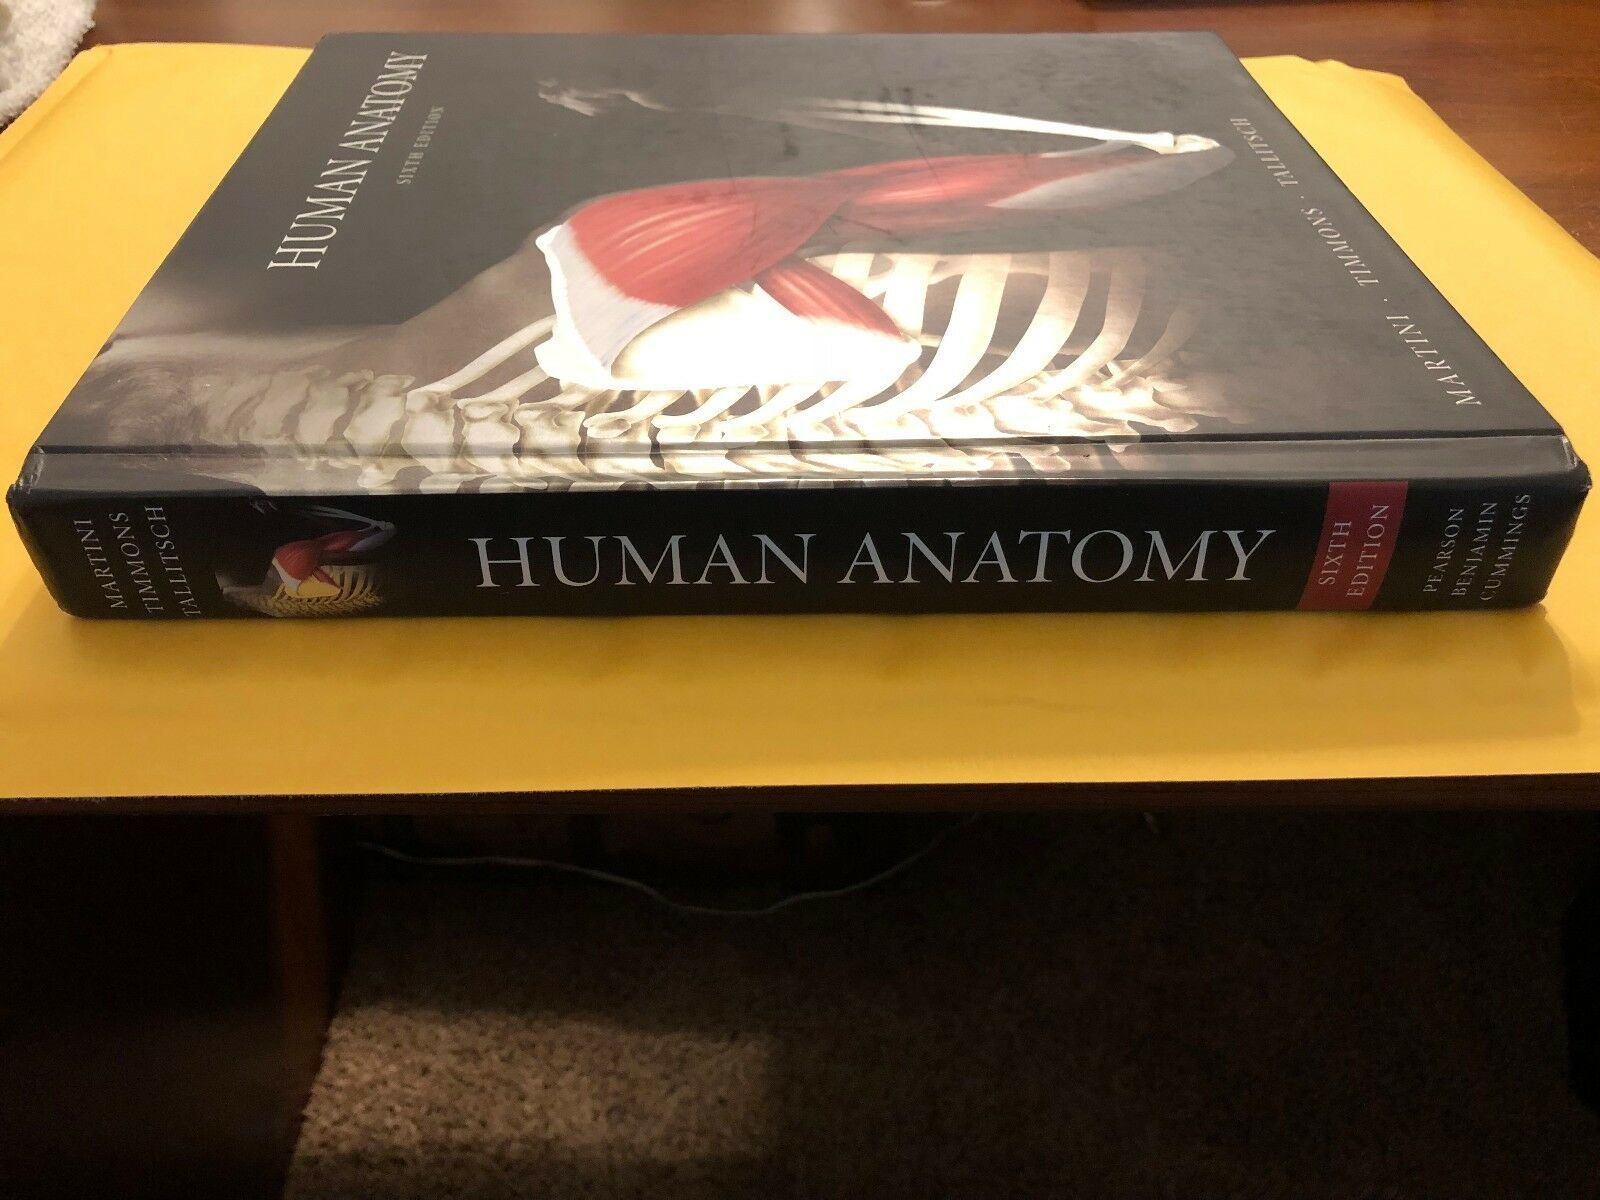 Human Anatomy by Michael J. Timmons, Robert B. Tallitsch and ...